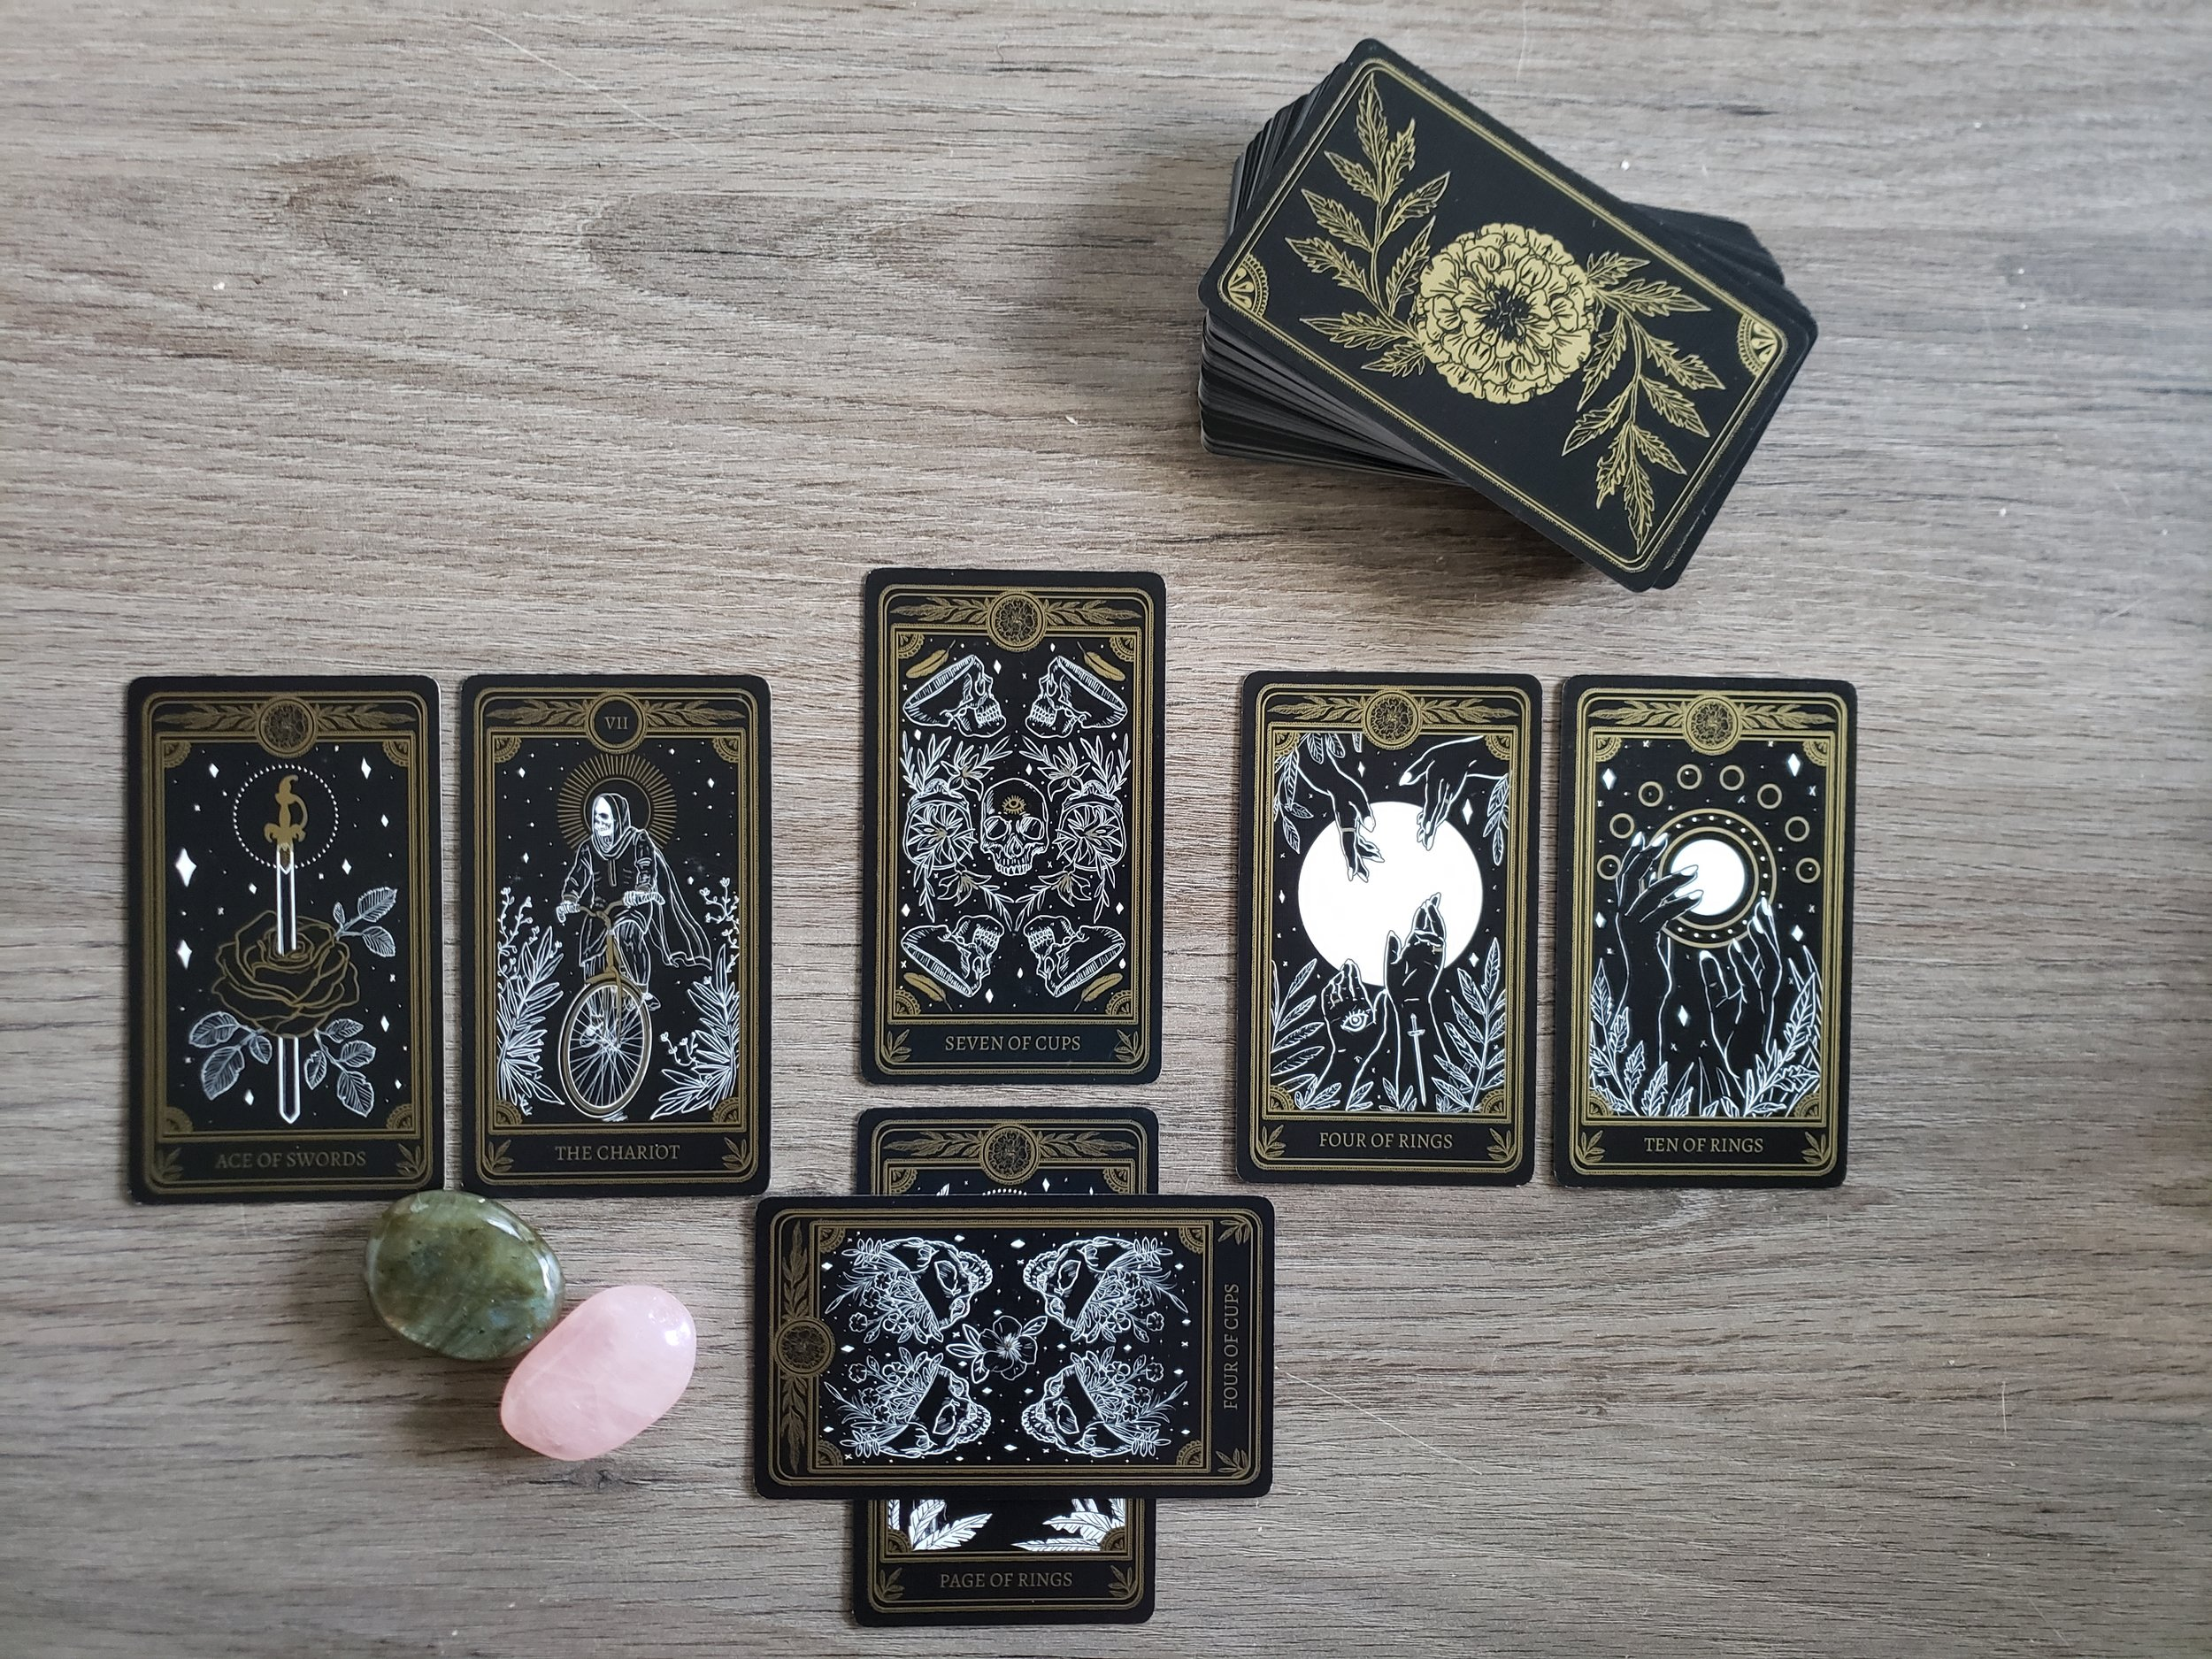 my own reading using this spread with the glorious Marigold Tarot; told you I was too deep in my mind- check out the Ace of Swords in the first position!